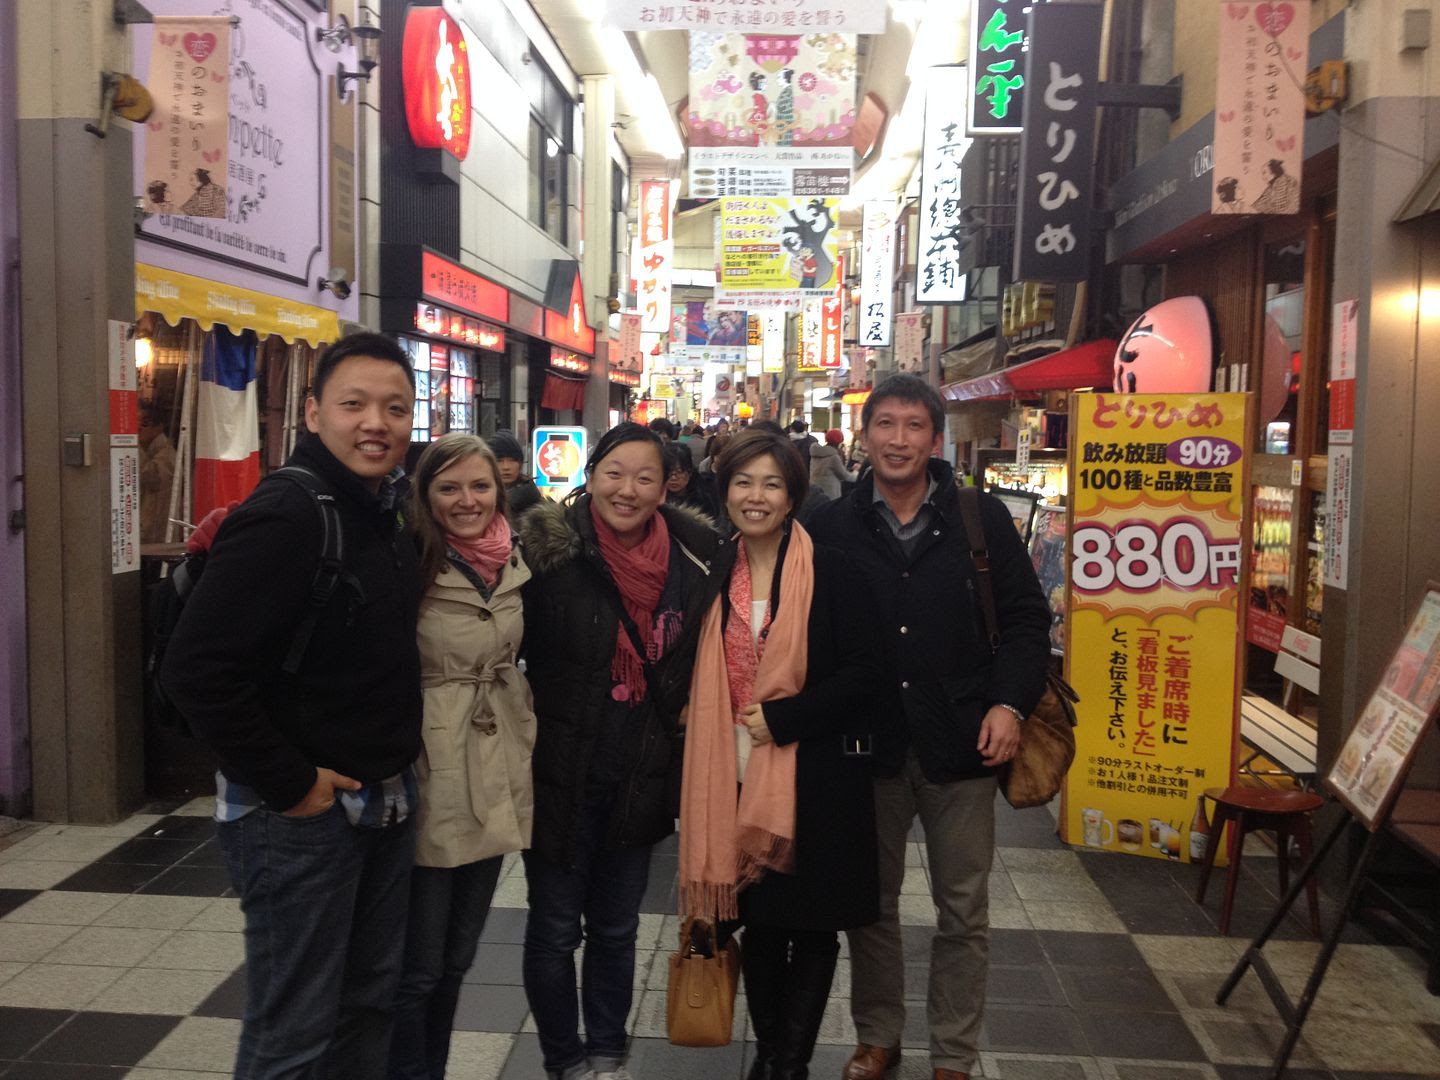 With Friends in Osaka, Japan photo 2013-12-23185130_zps4332430b.jpg